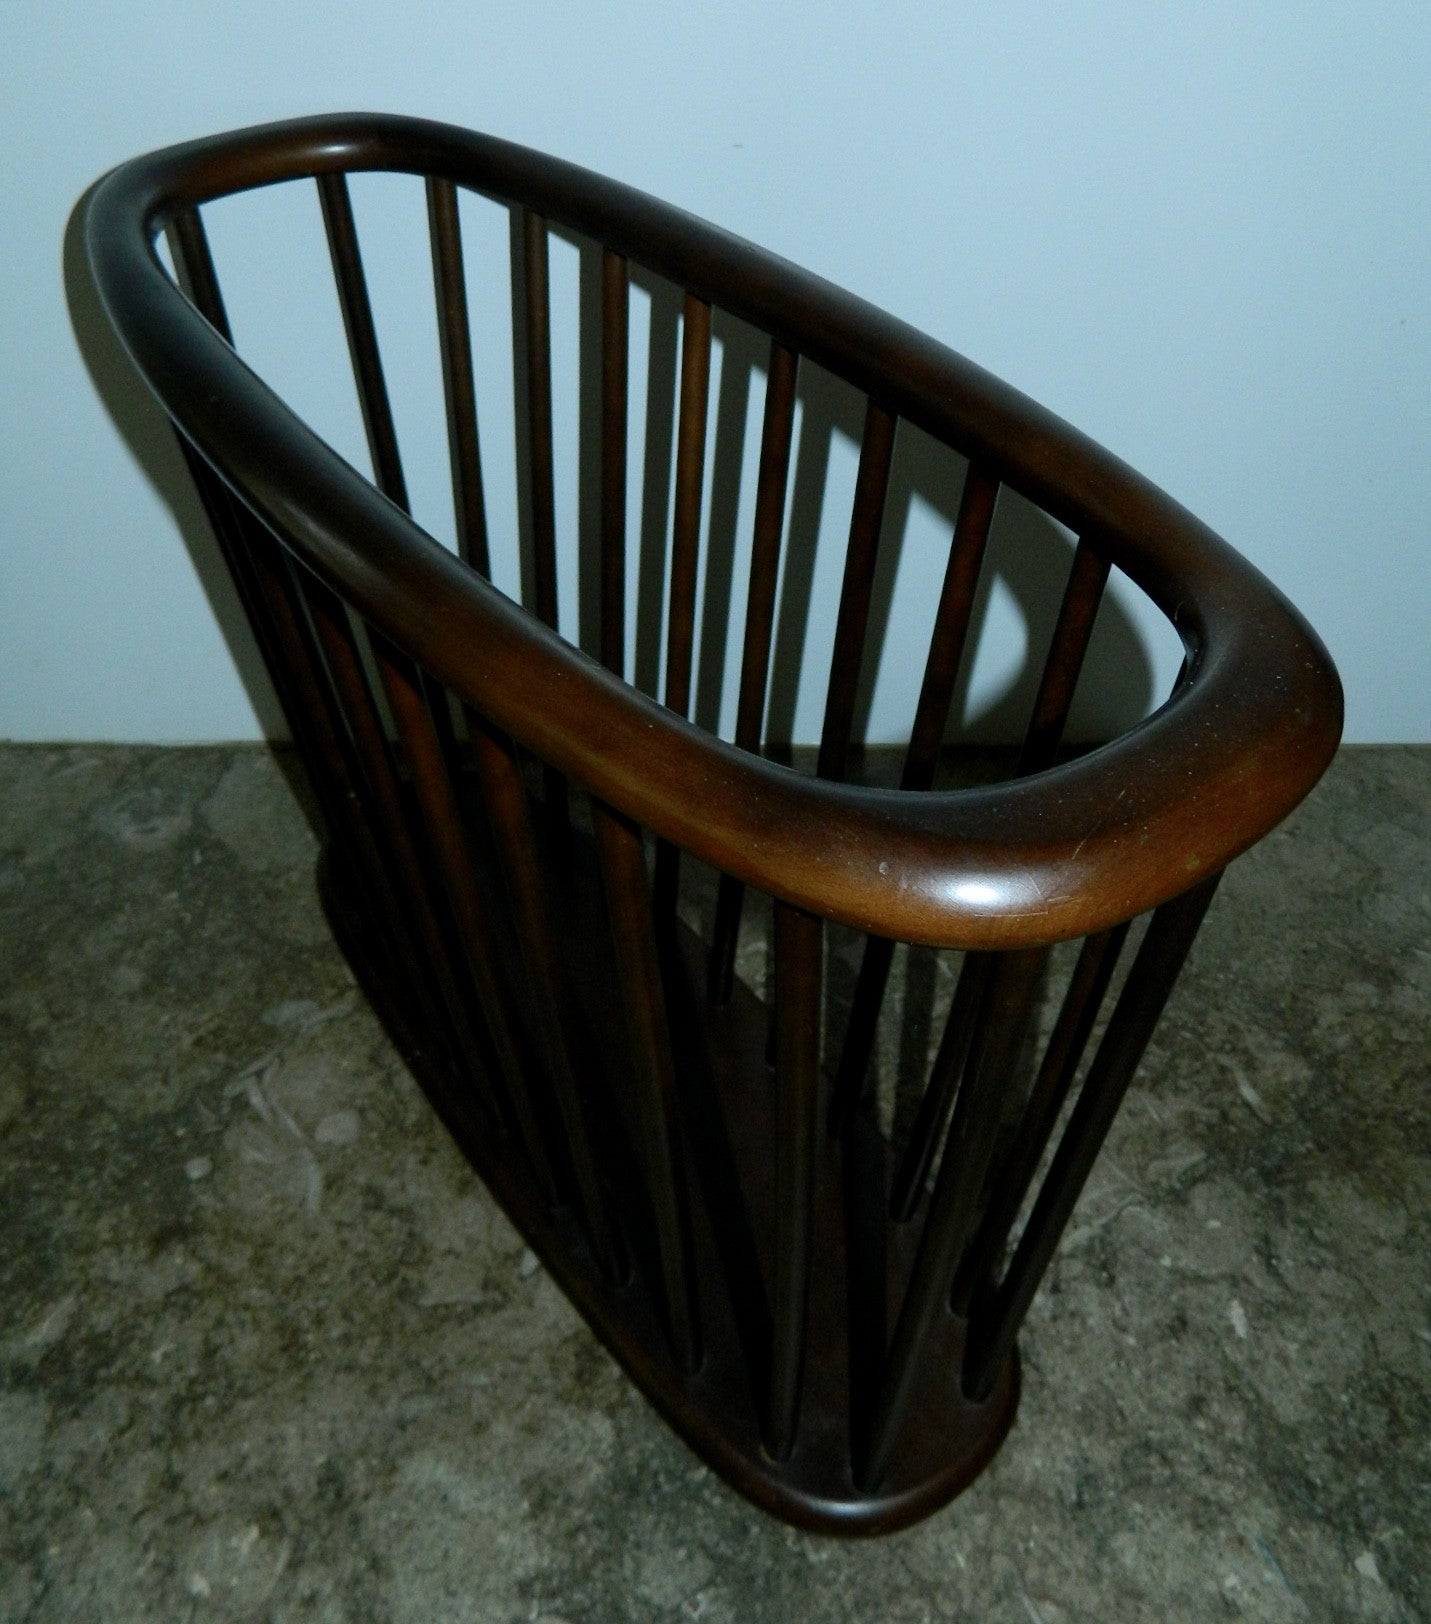 vintage MCM walnut magazine rack wood basket 1960s decor